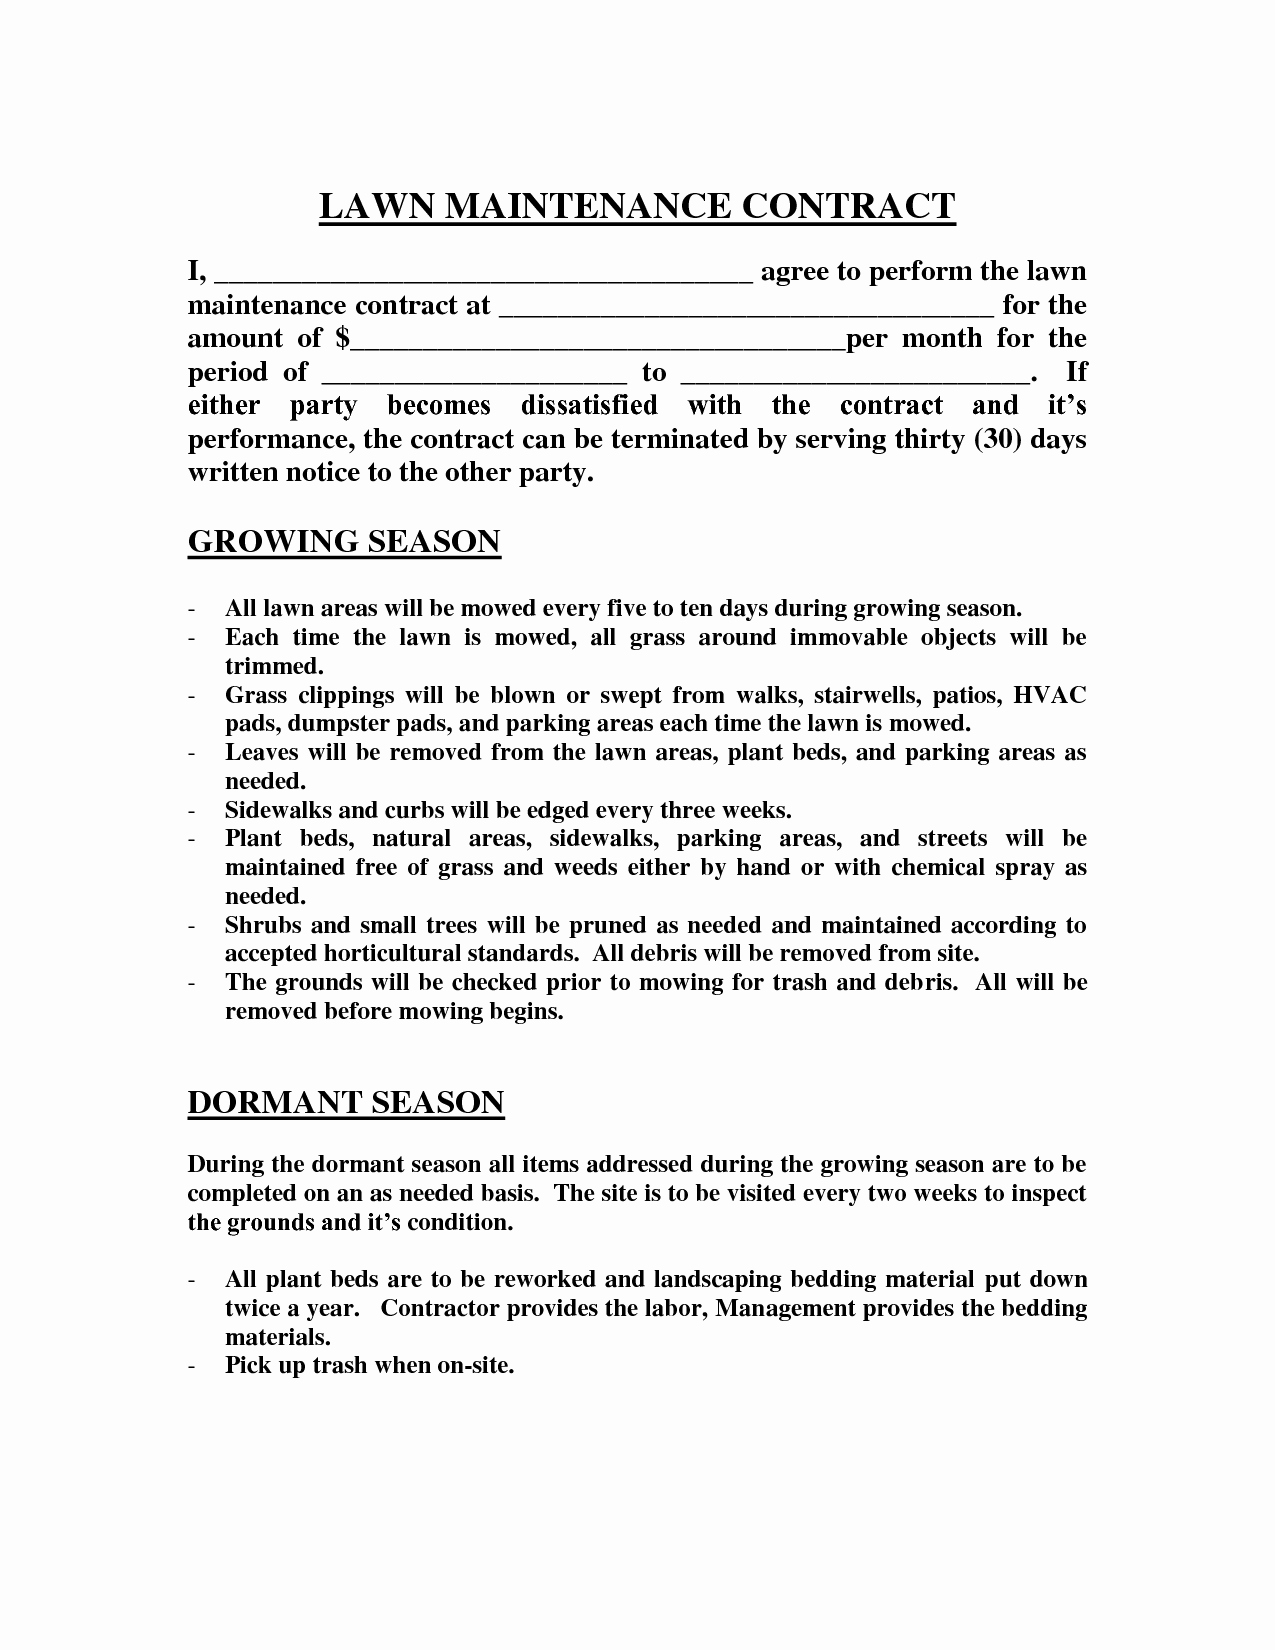 Lawn Service Contract Template Lovely Lawn Maintenance Contract Agreement Free Printable Documents